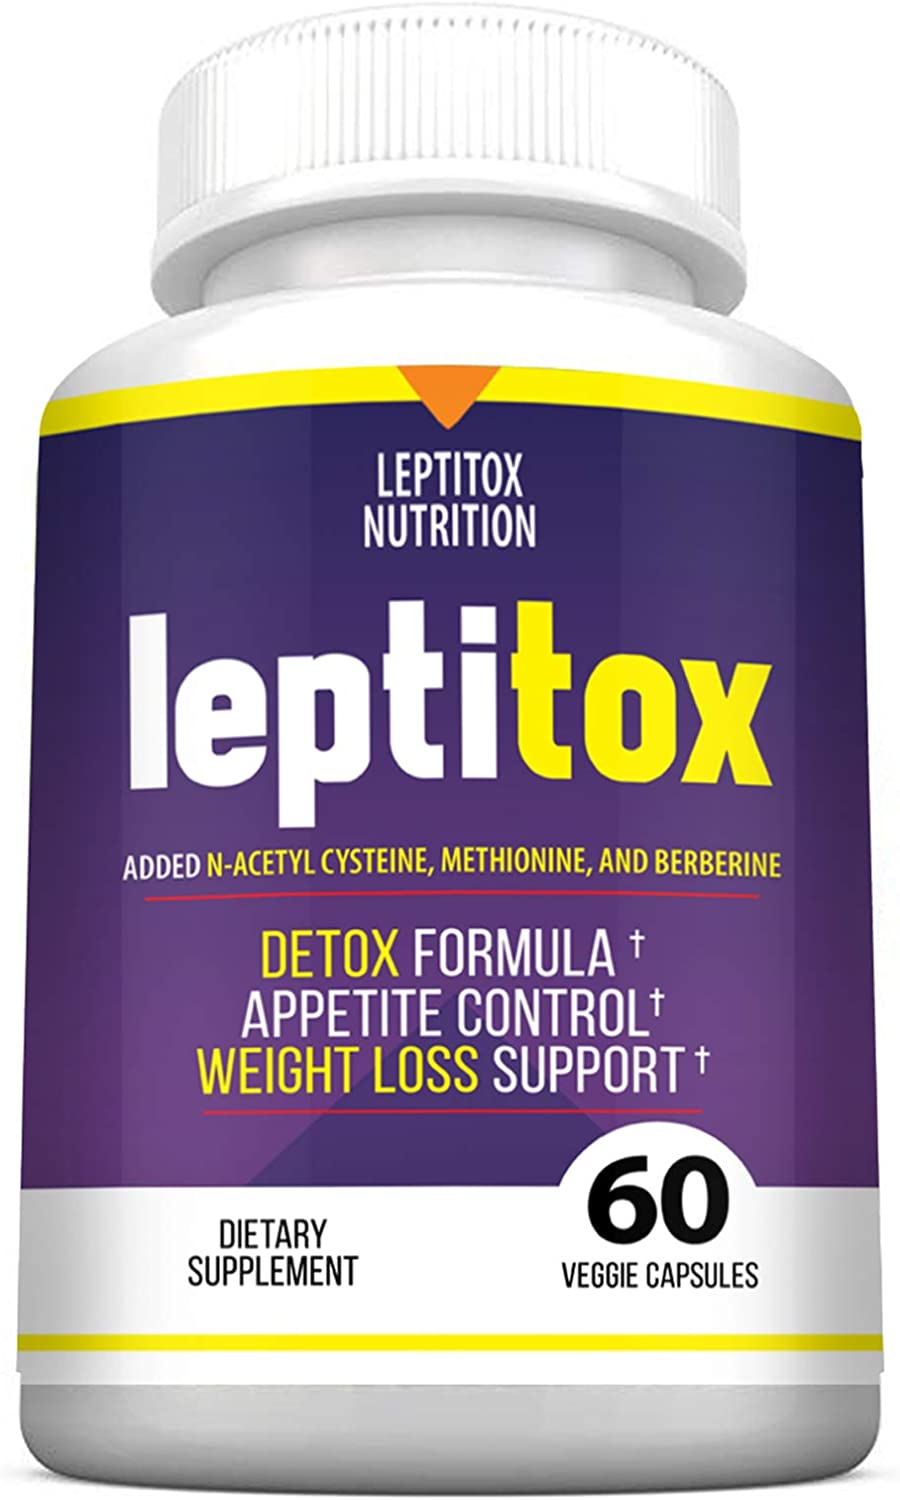 Leptitox Weight Loss Free Offer June